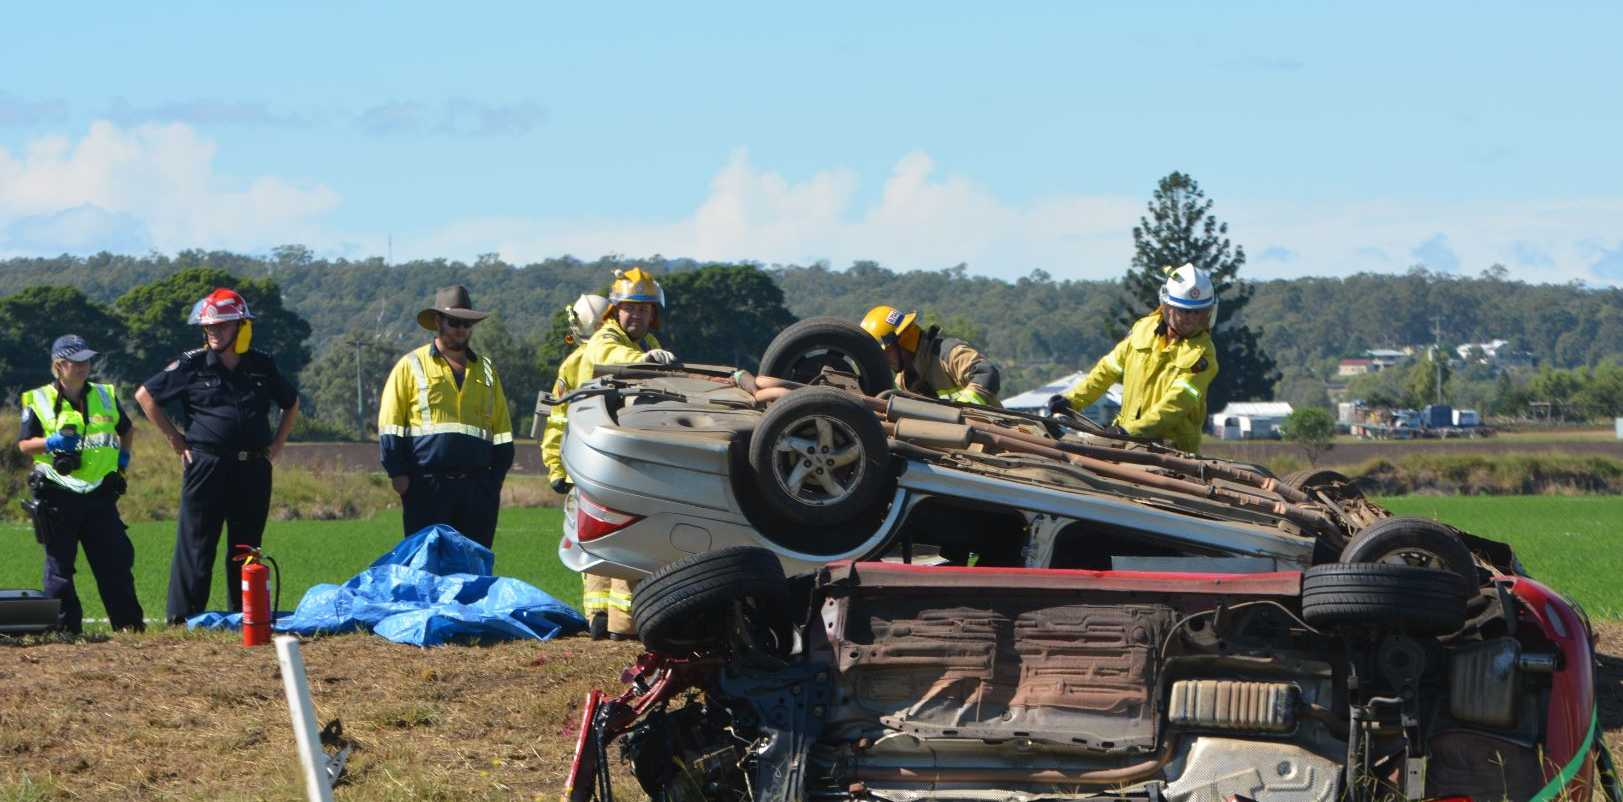 A two vehicle crash at the intersection of Lake Clarendon Way and Forest Hill-Fernvale Rd at Glenore Grove at 8am this morning has claimed the life of a 63-year-old woman.